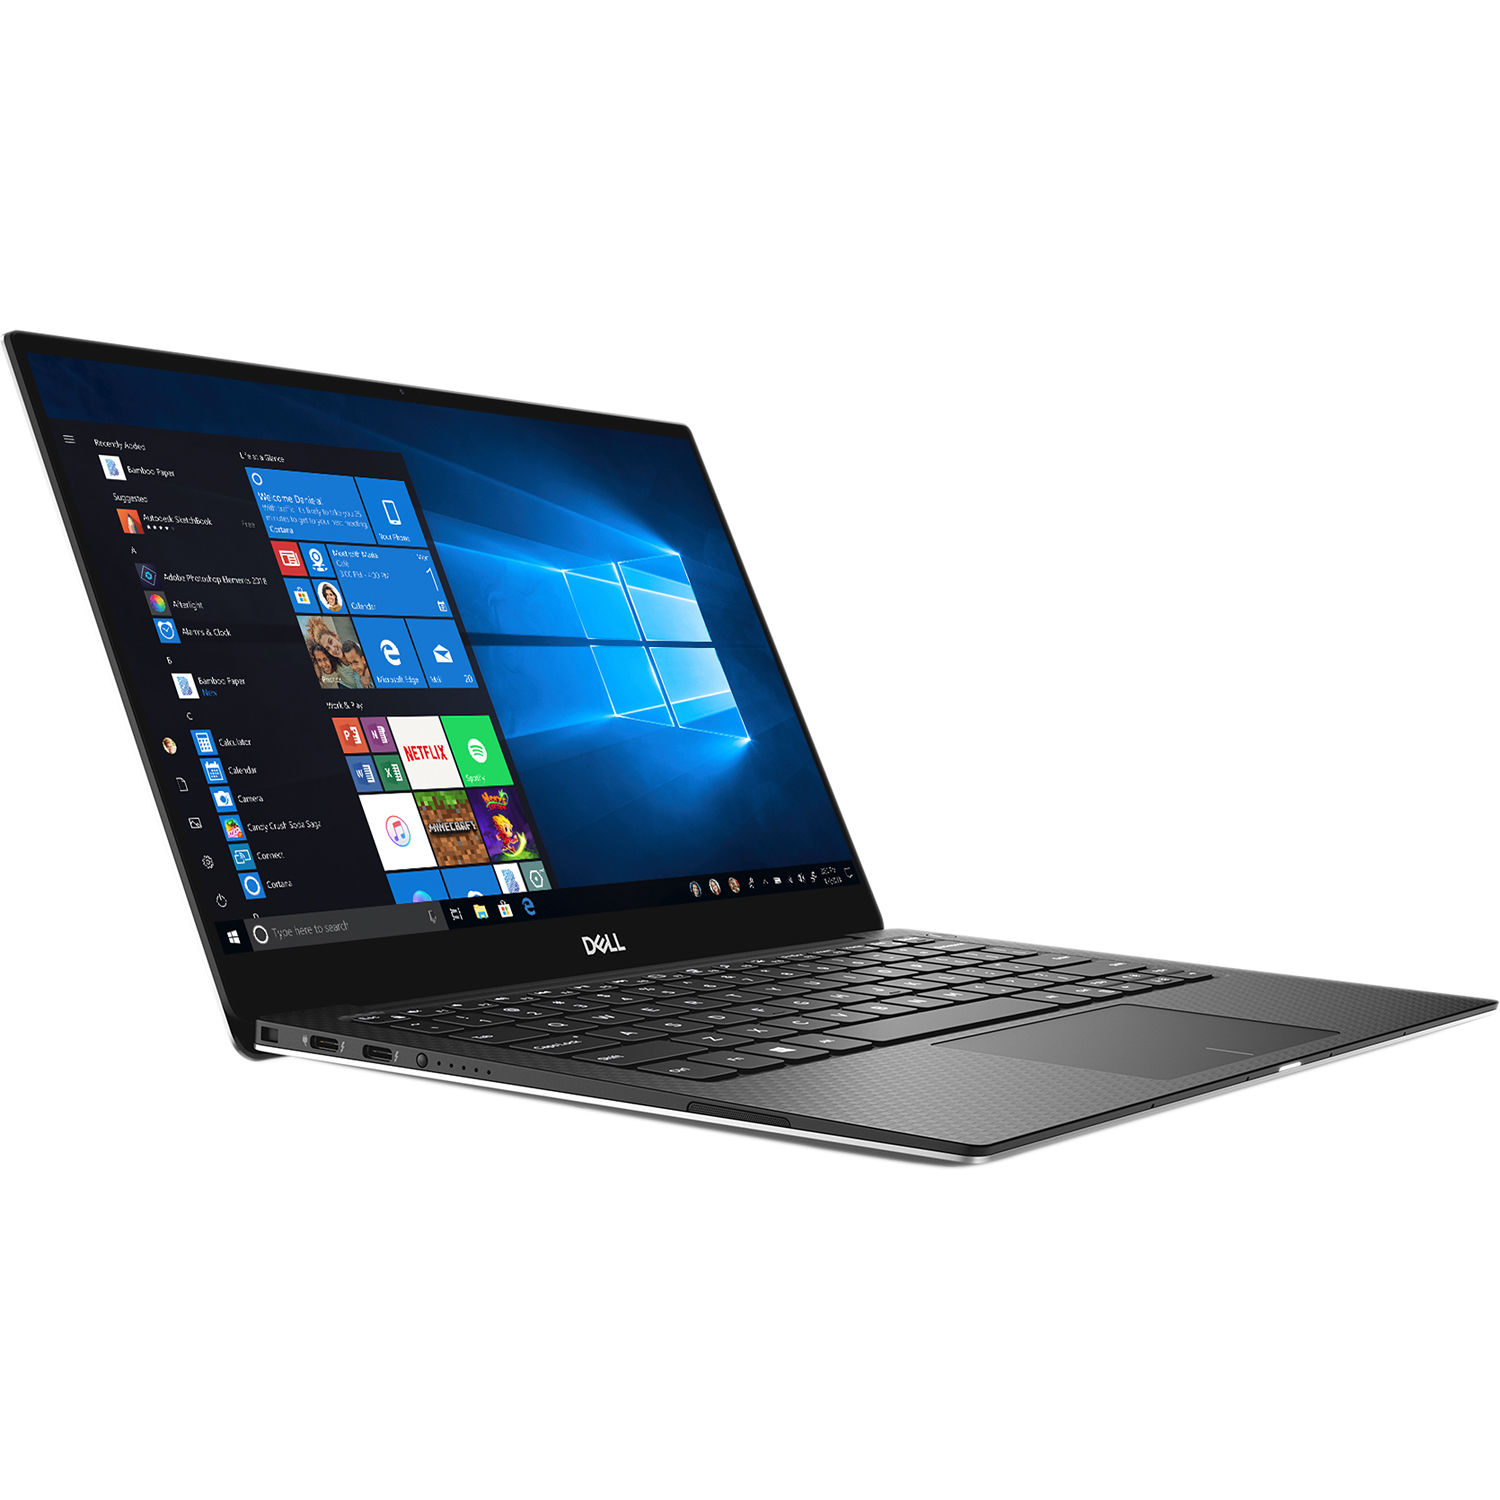 dell xps 2 in 1 touchscreen laptop users manual